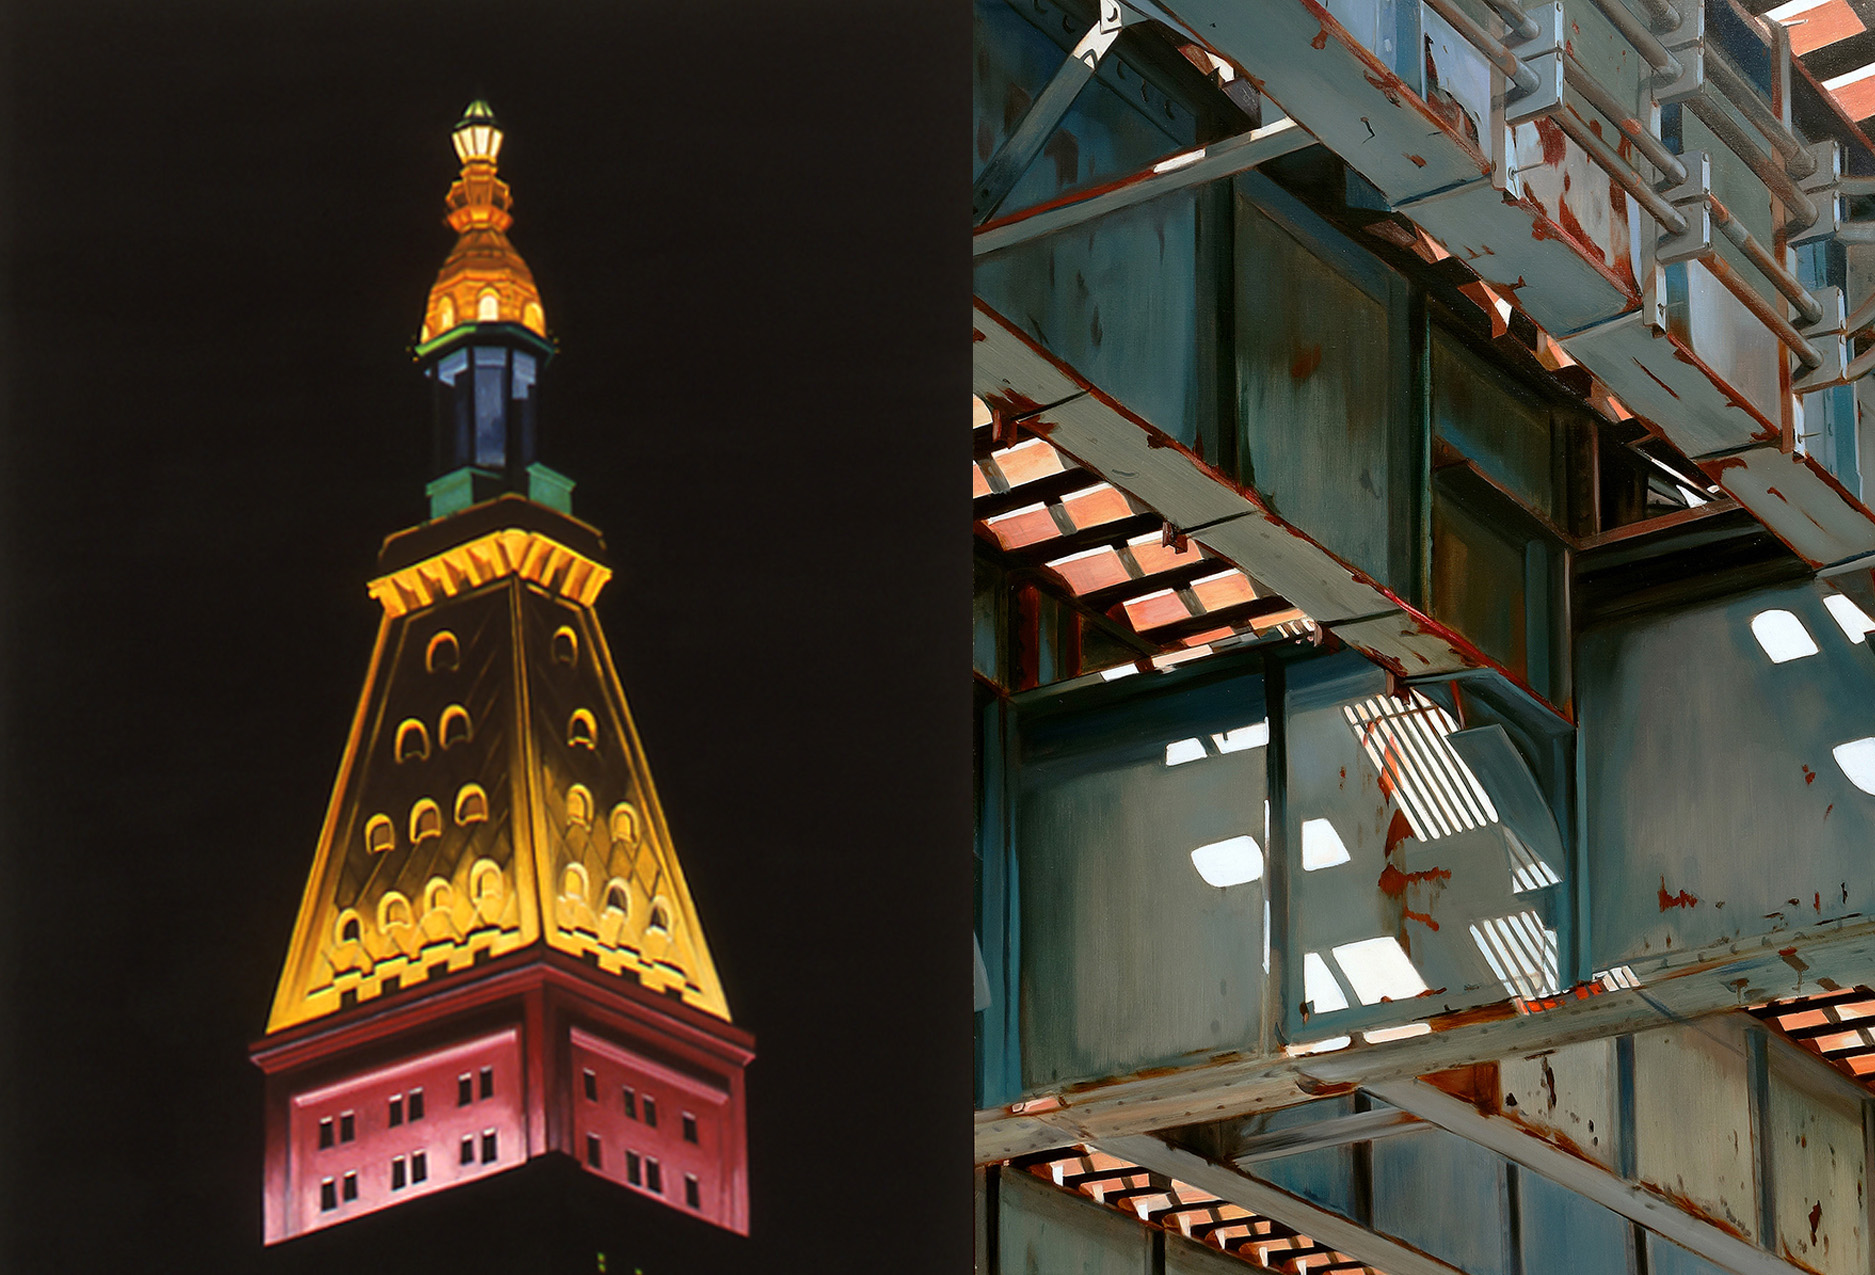 "Left: Sharon Florin, Easter Bonnet (2003), Oil on canvas, 36"" x 24""; Right: Allan Gorman, Z Line Zs (2017), Oil on linen, 64"" x 52"""